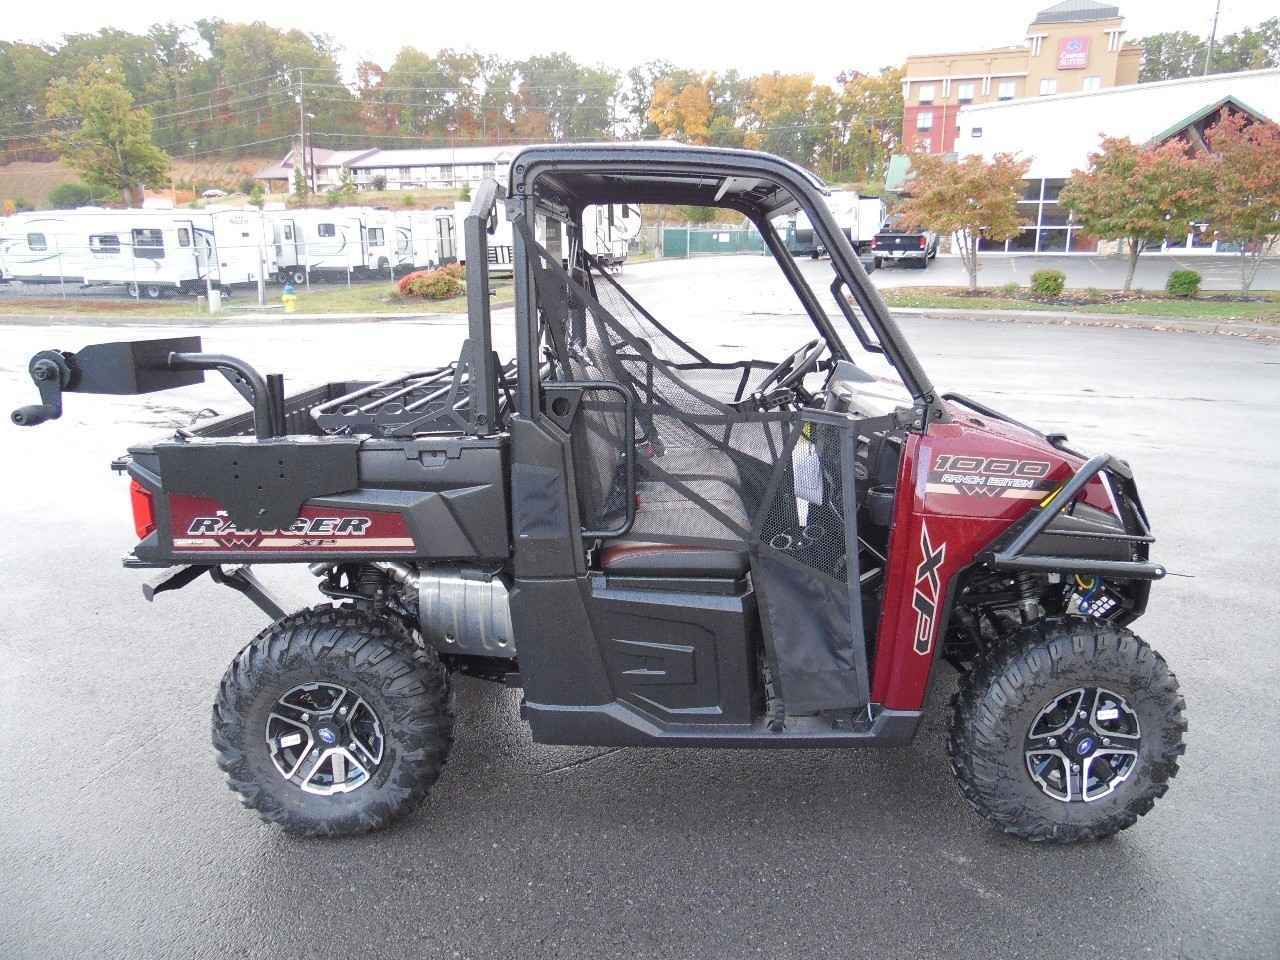 new 2017 polaris ranger xp 1000 eps ranch edition maroon metallic atvs for sale in tennessee on. Black Bedroom Furniture Sets. Home Design Ideas